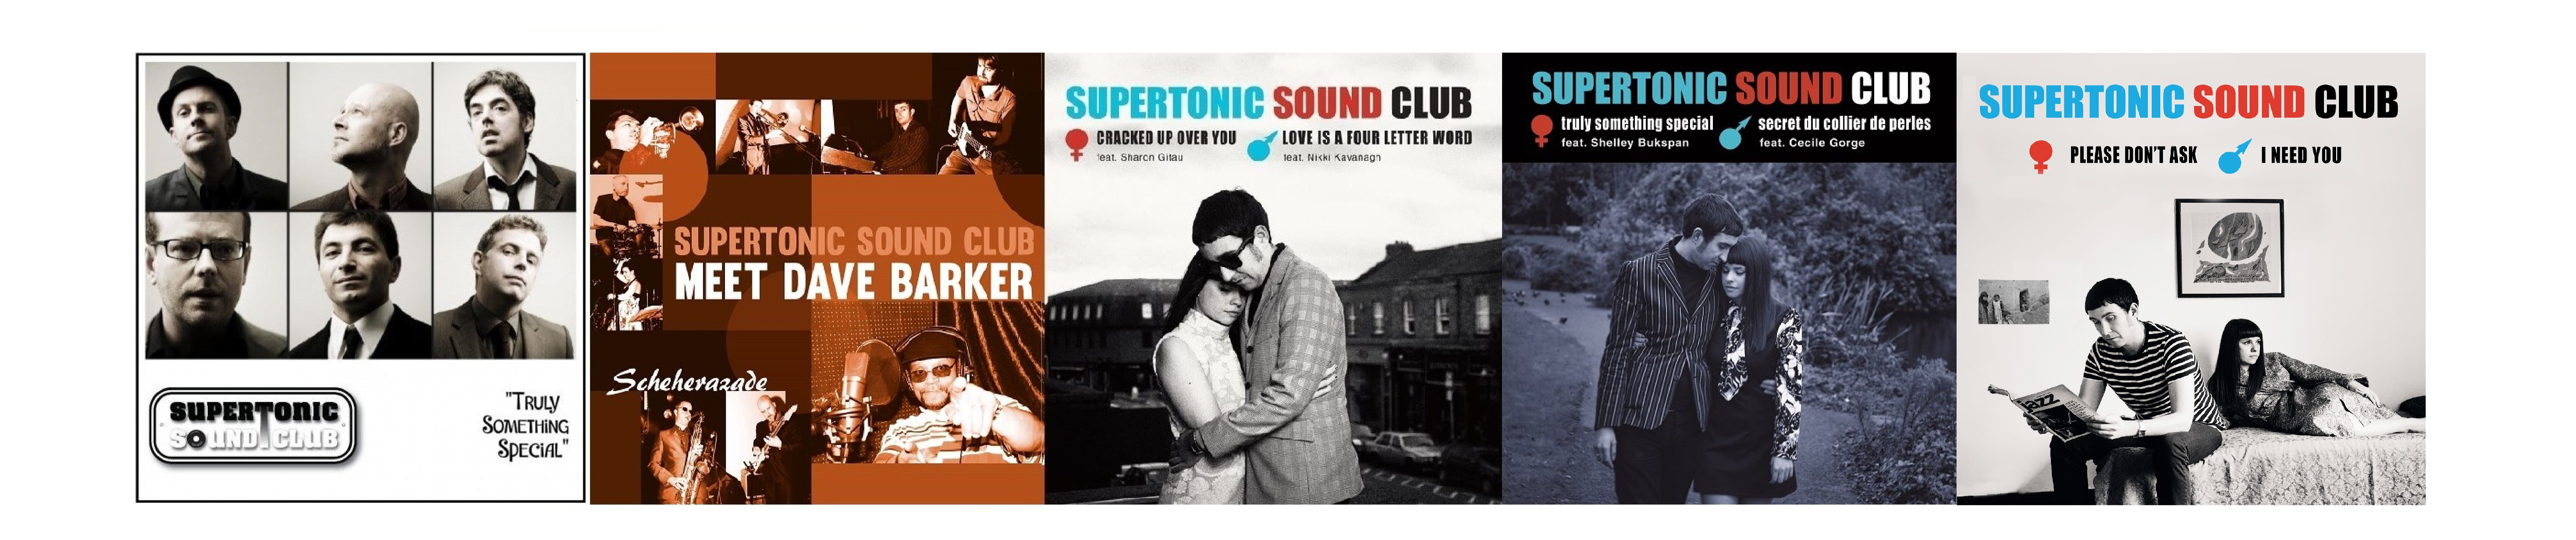 Stream Supertonic Sound Club music   Listen to songs, albums ...